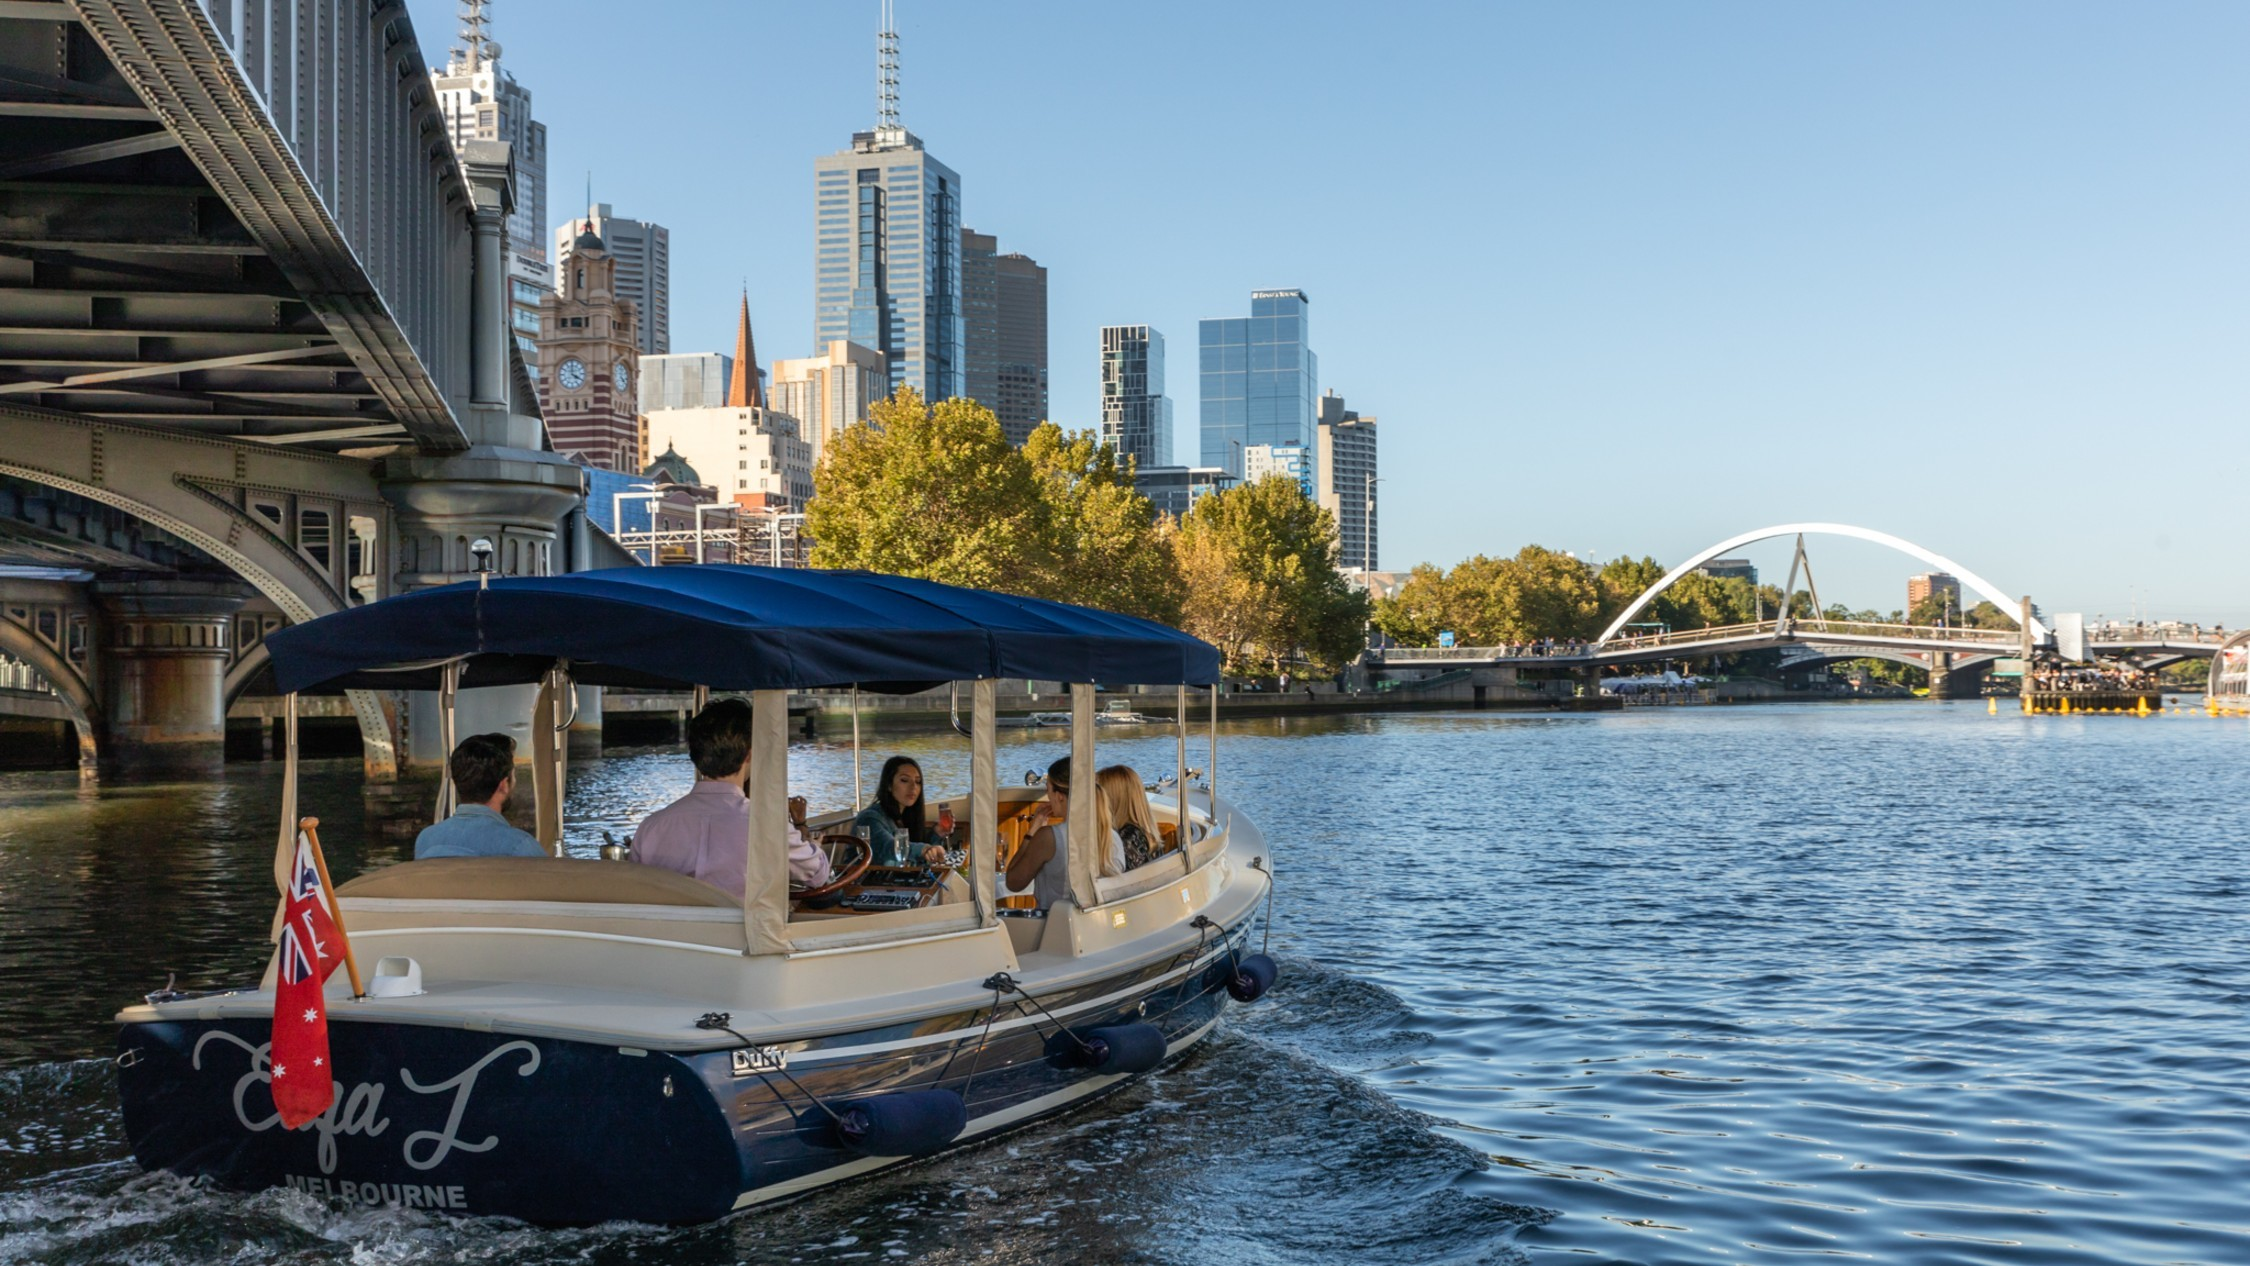 Melbourne Boat Hire self-driving boat